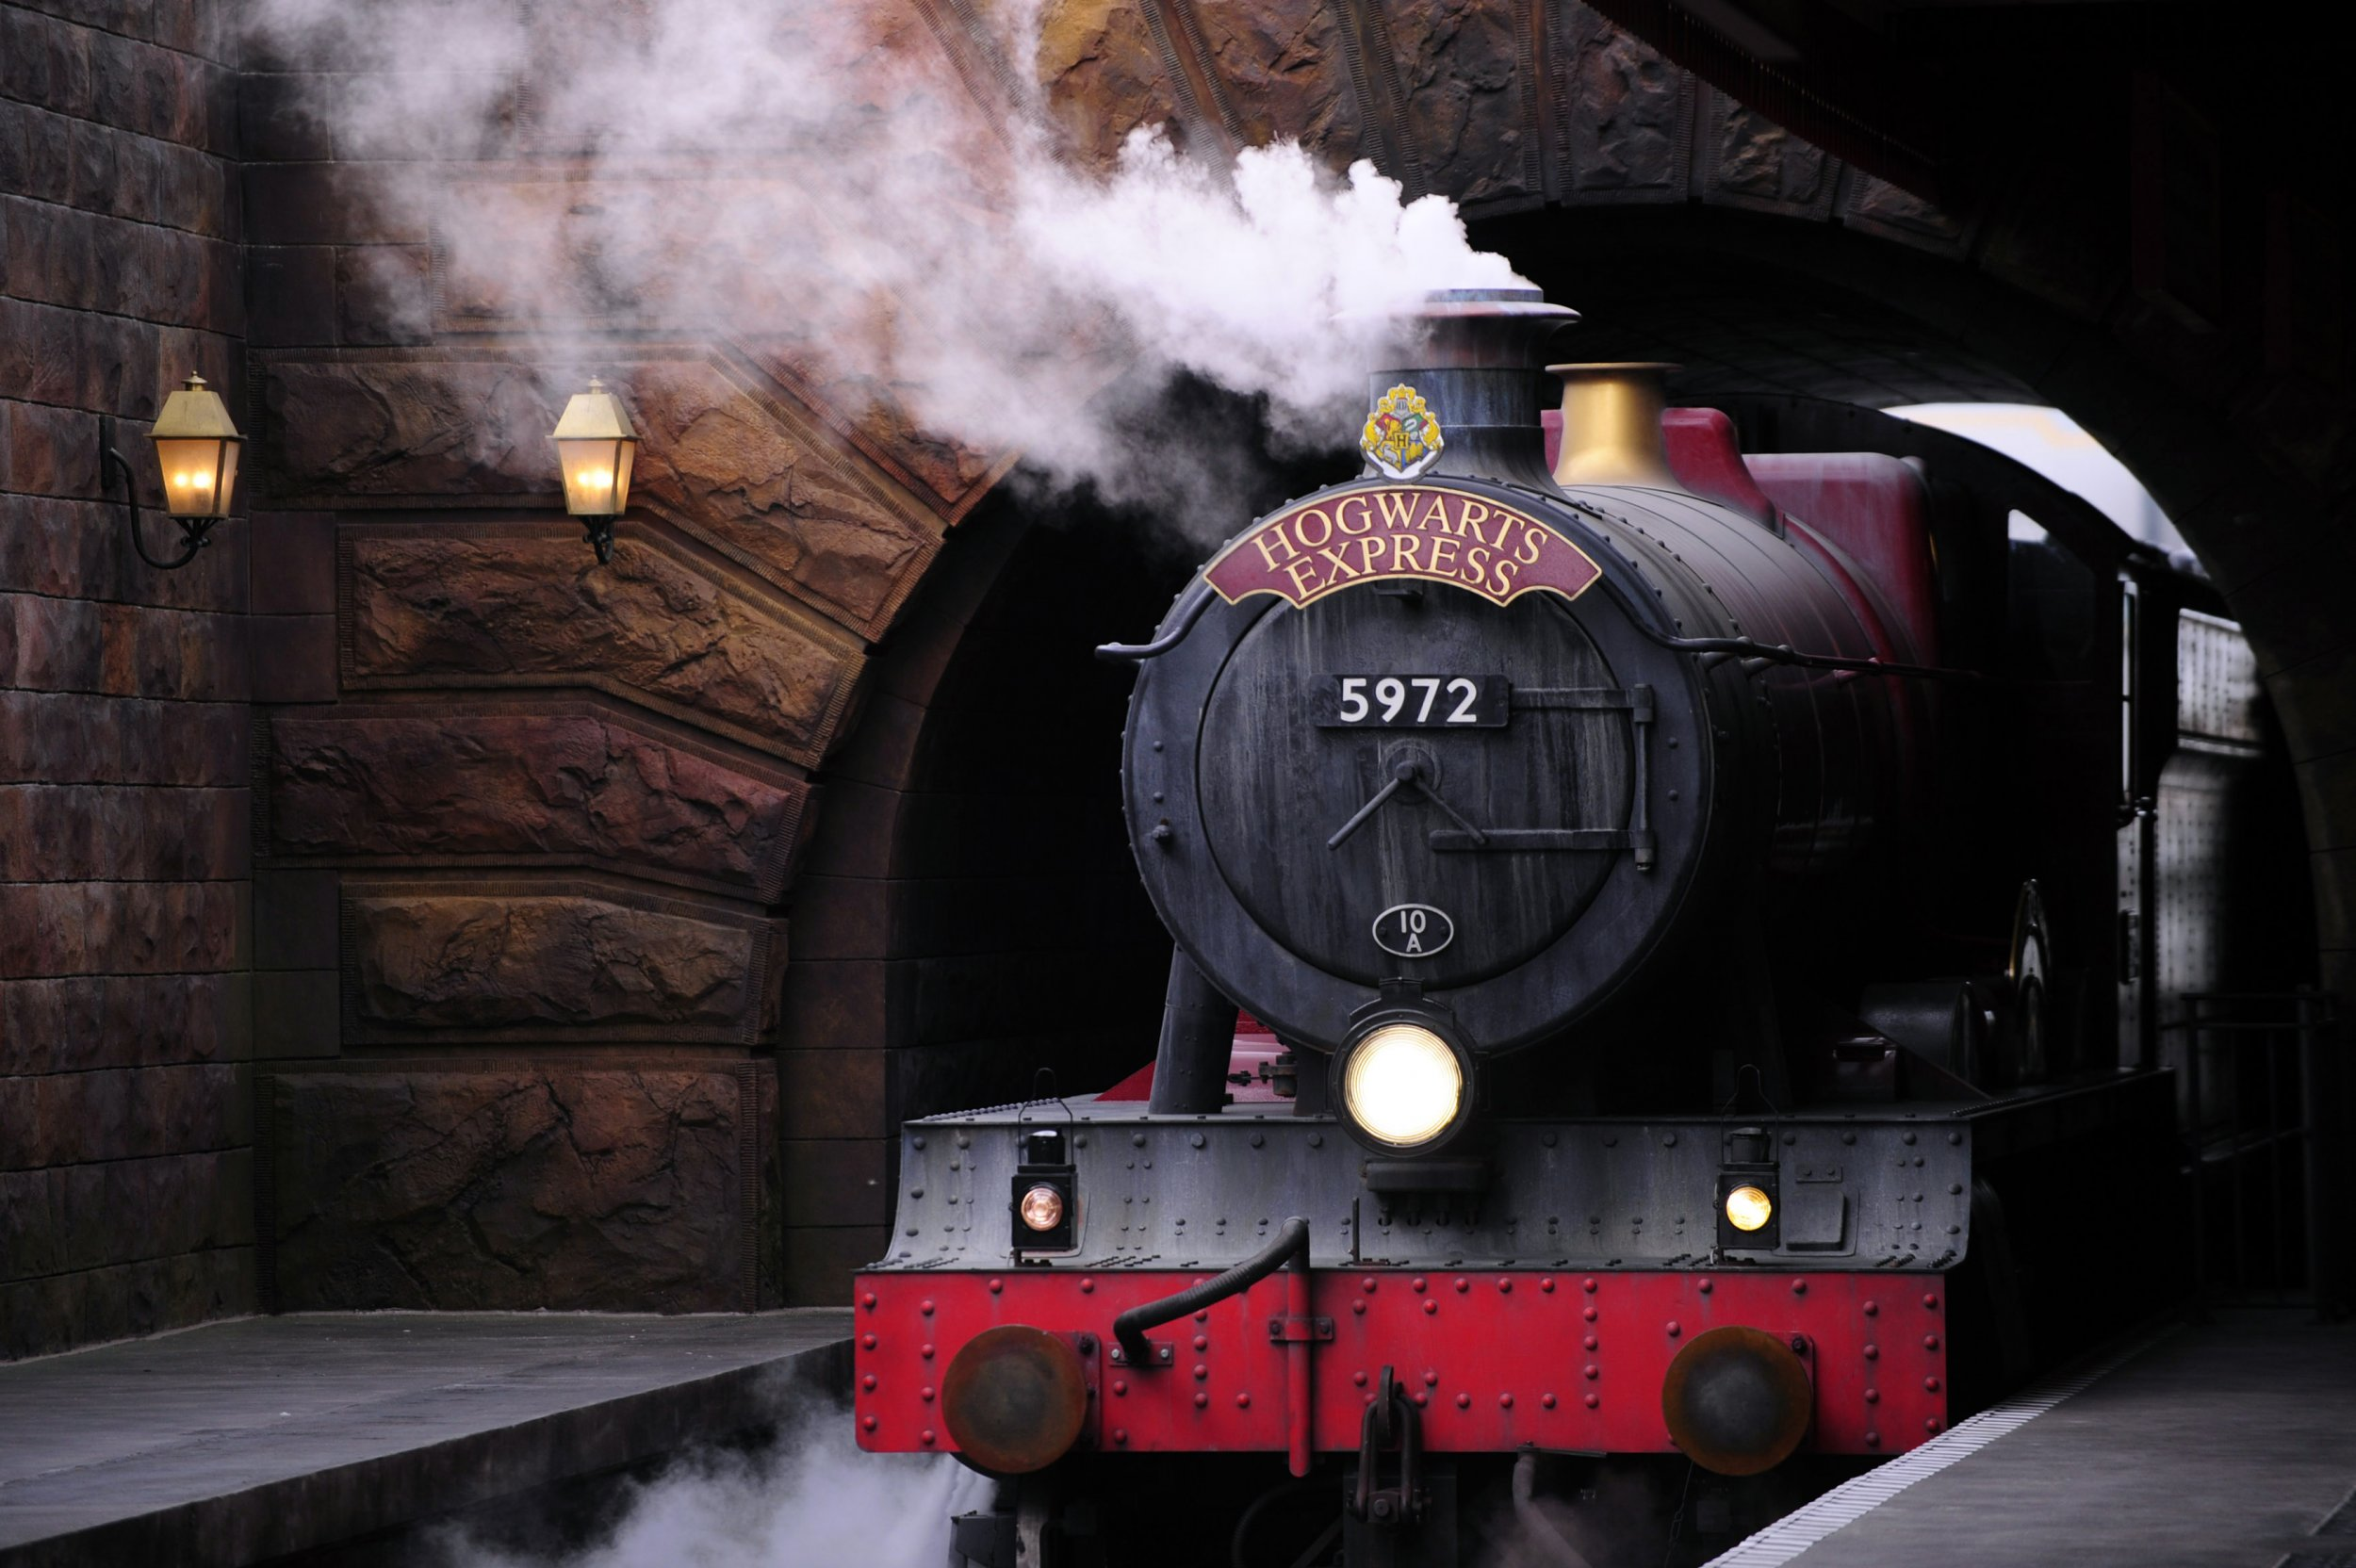 Aboard the Hogwarts Express.